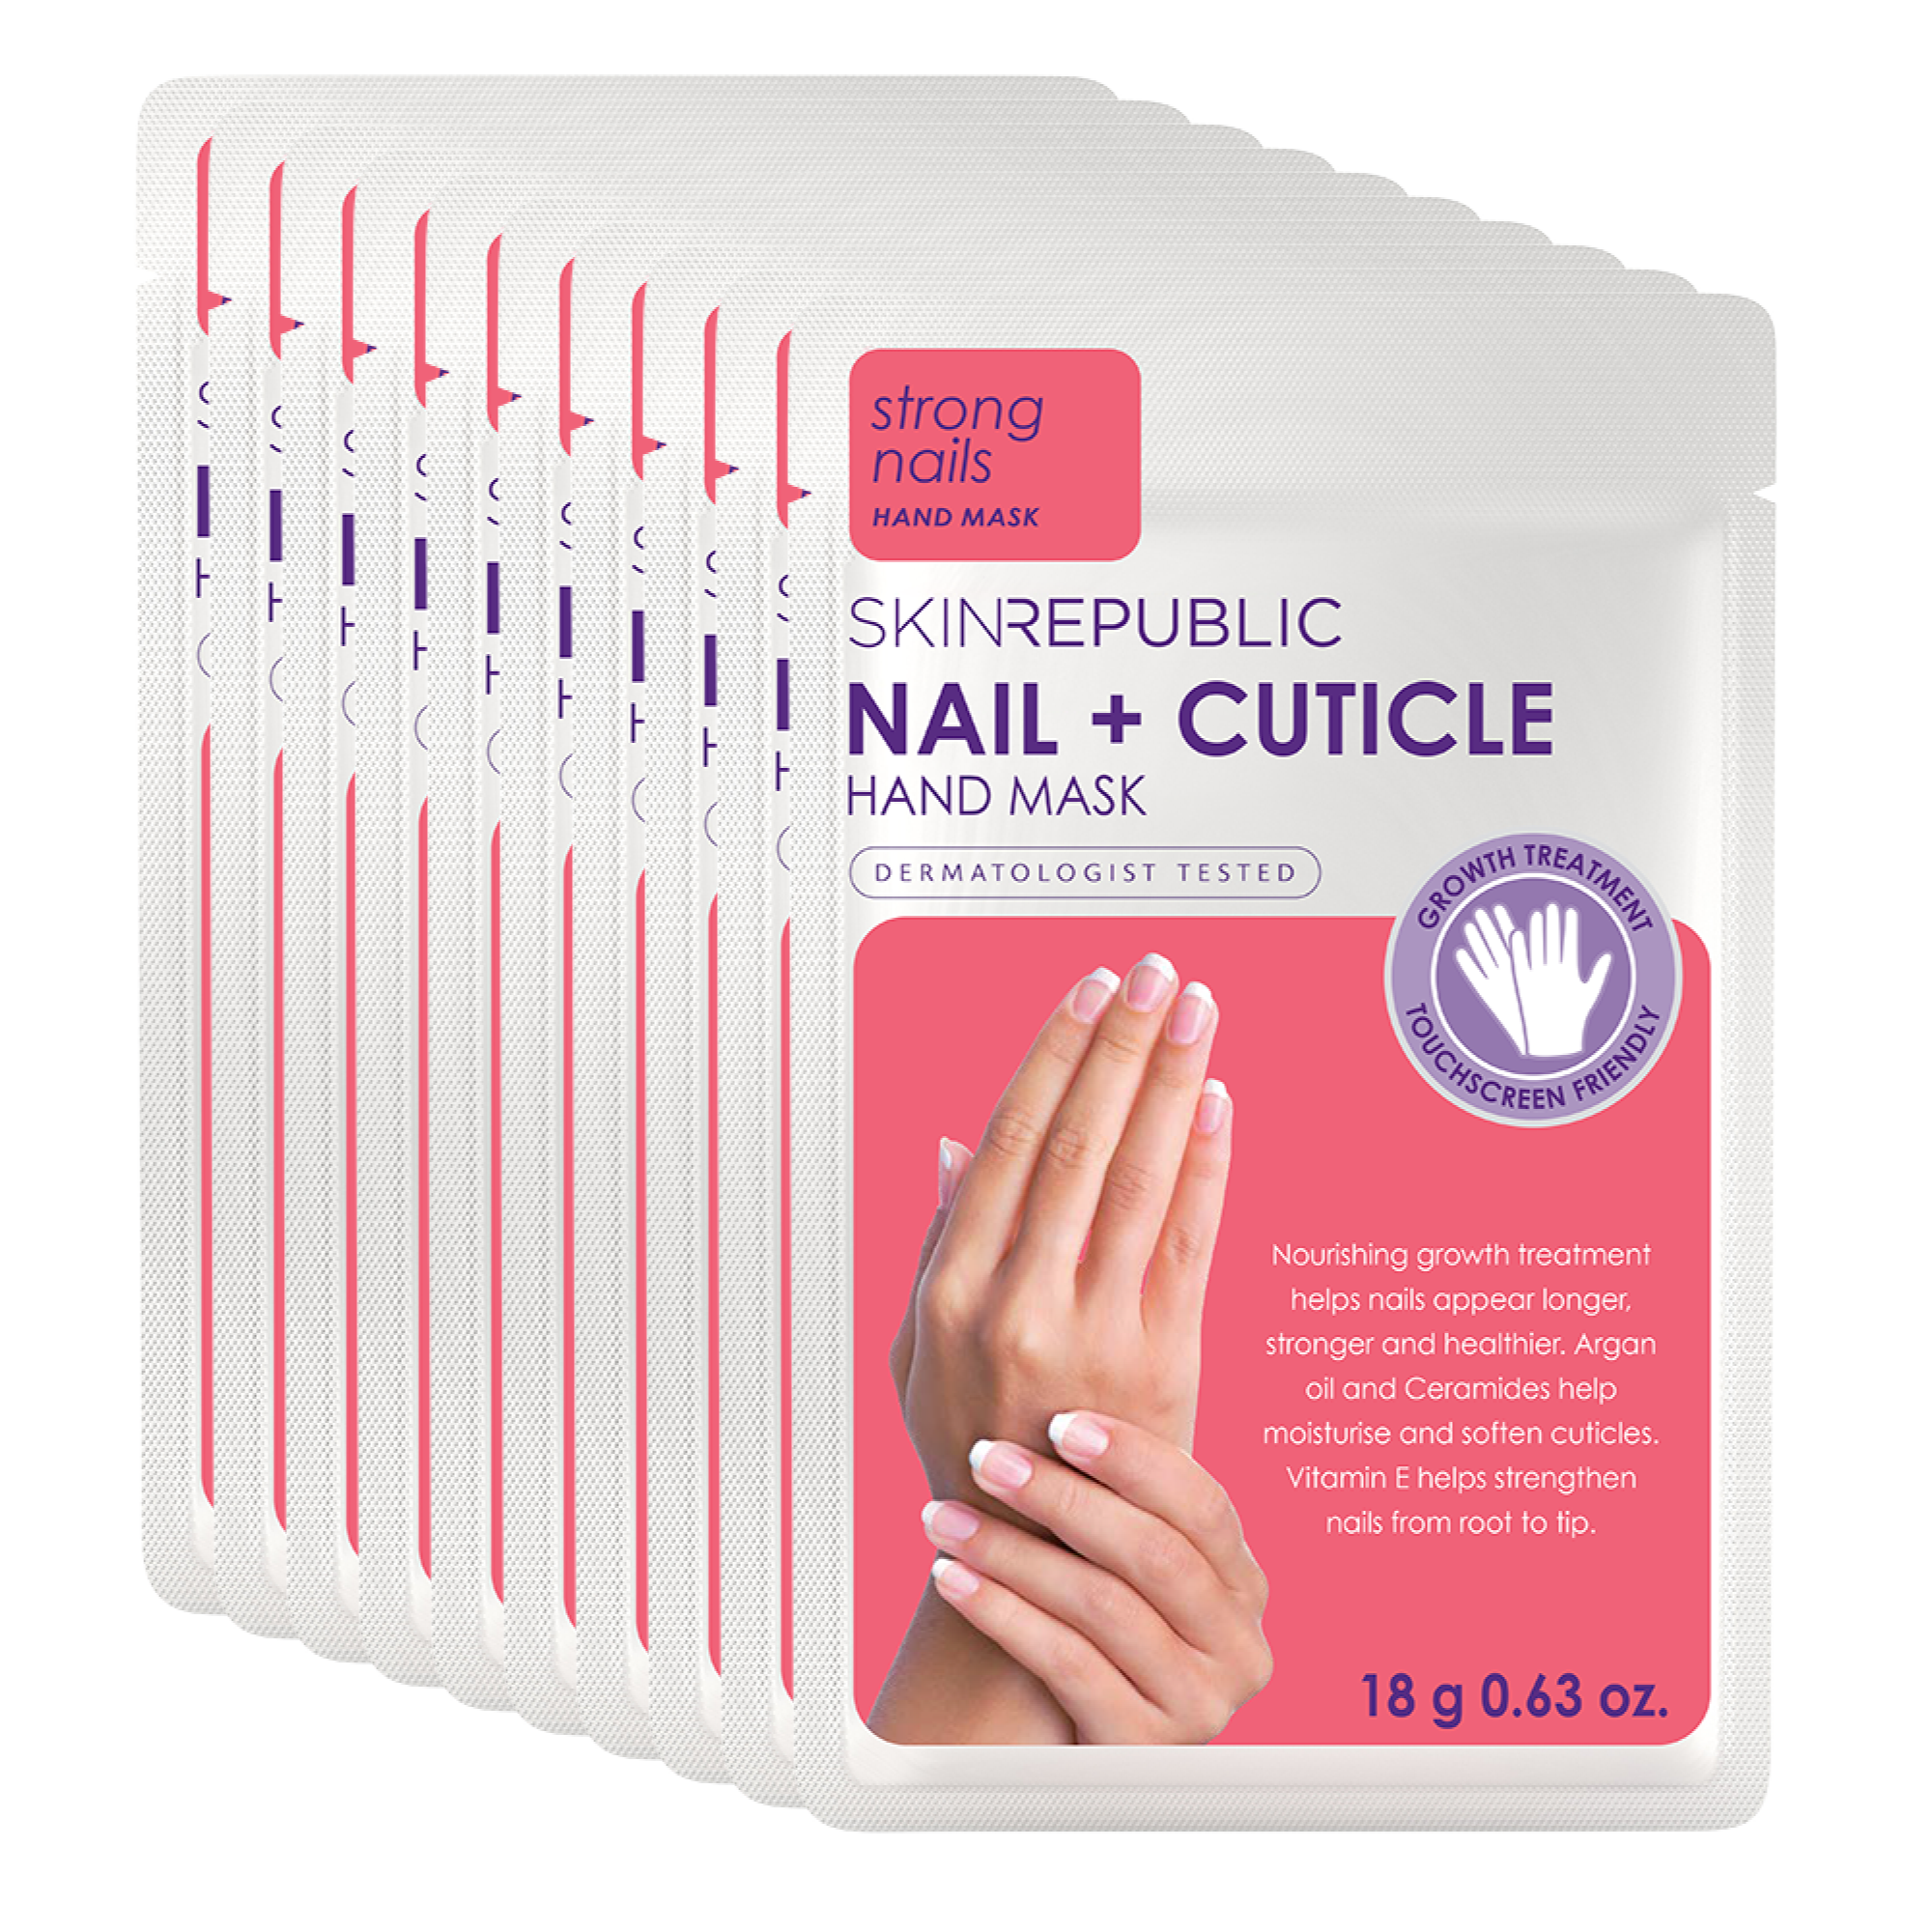 10 Pack Nail + Cuticle Hand Mask